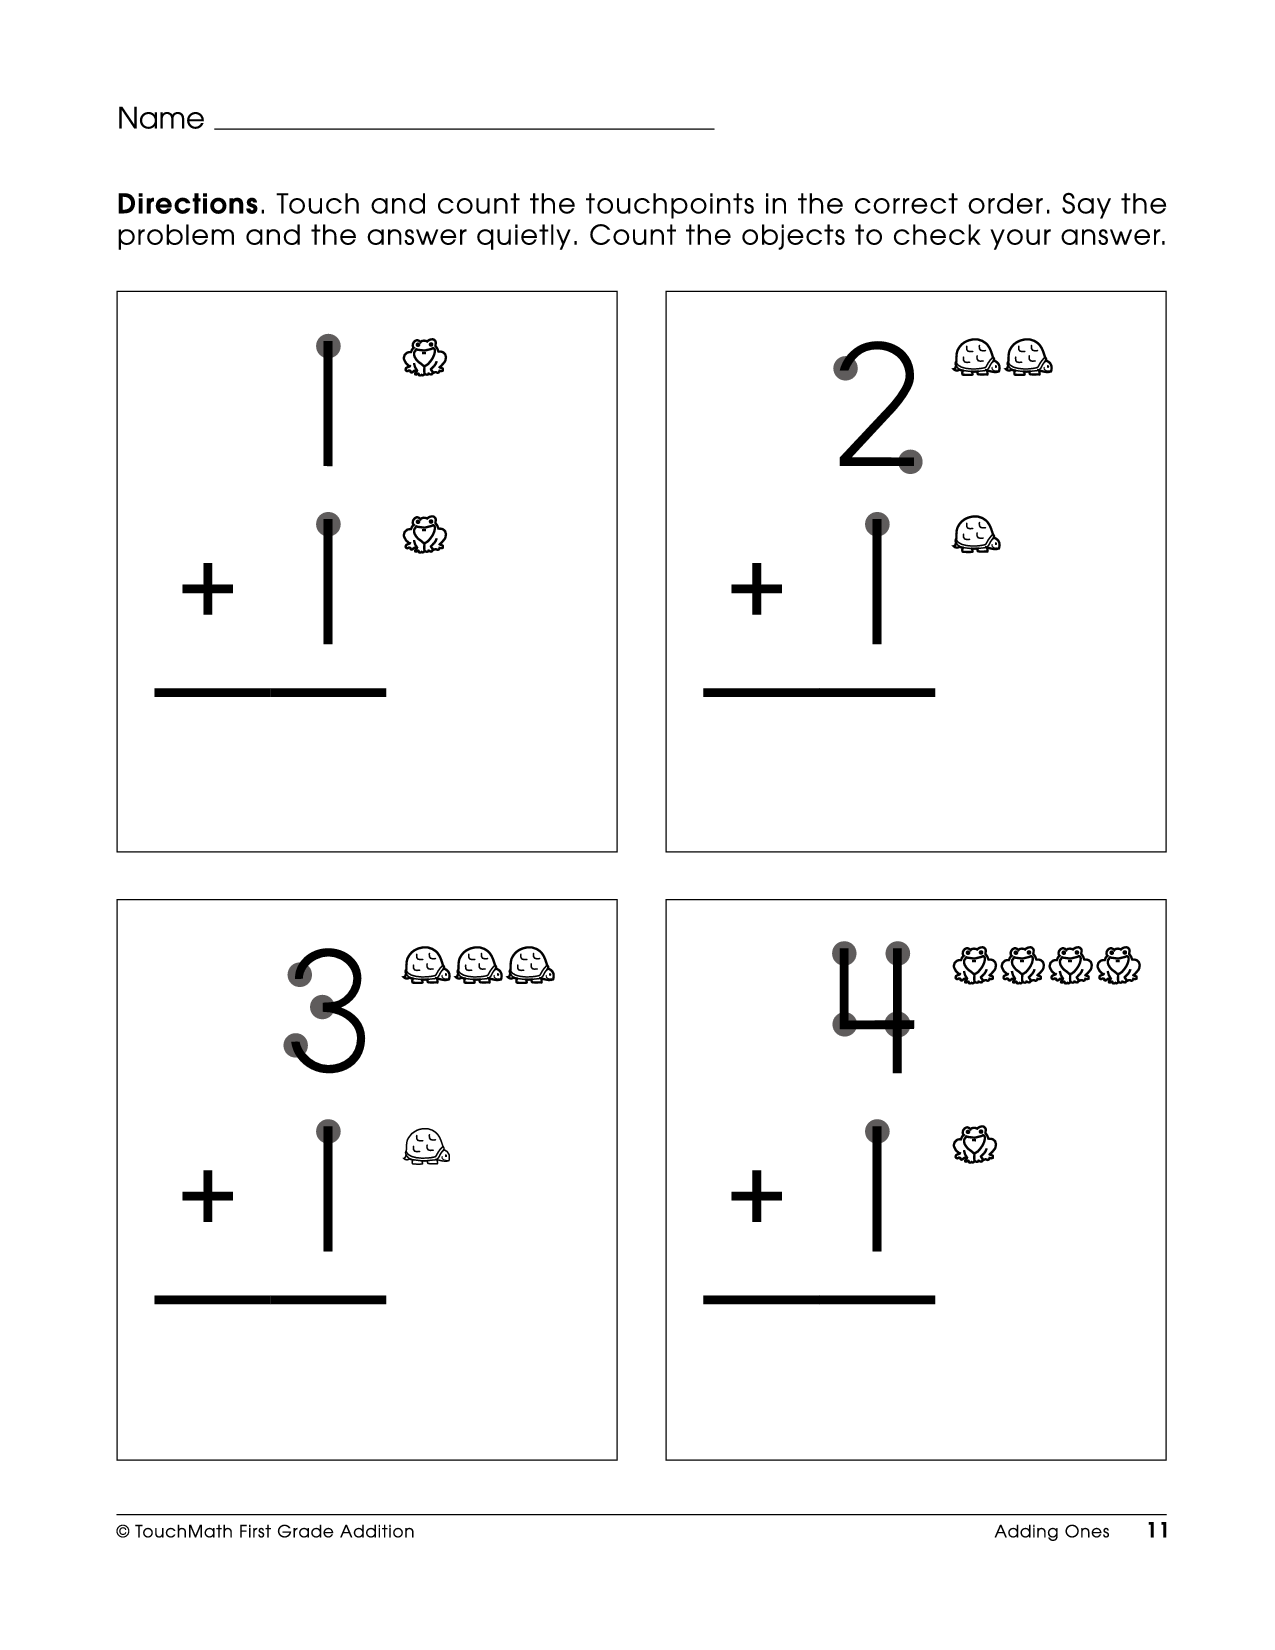 math worksheet : 1000 images about touch math on pinterest  touch math math and  : Math Addition Worksheets Printable